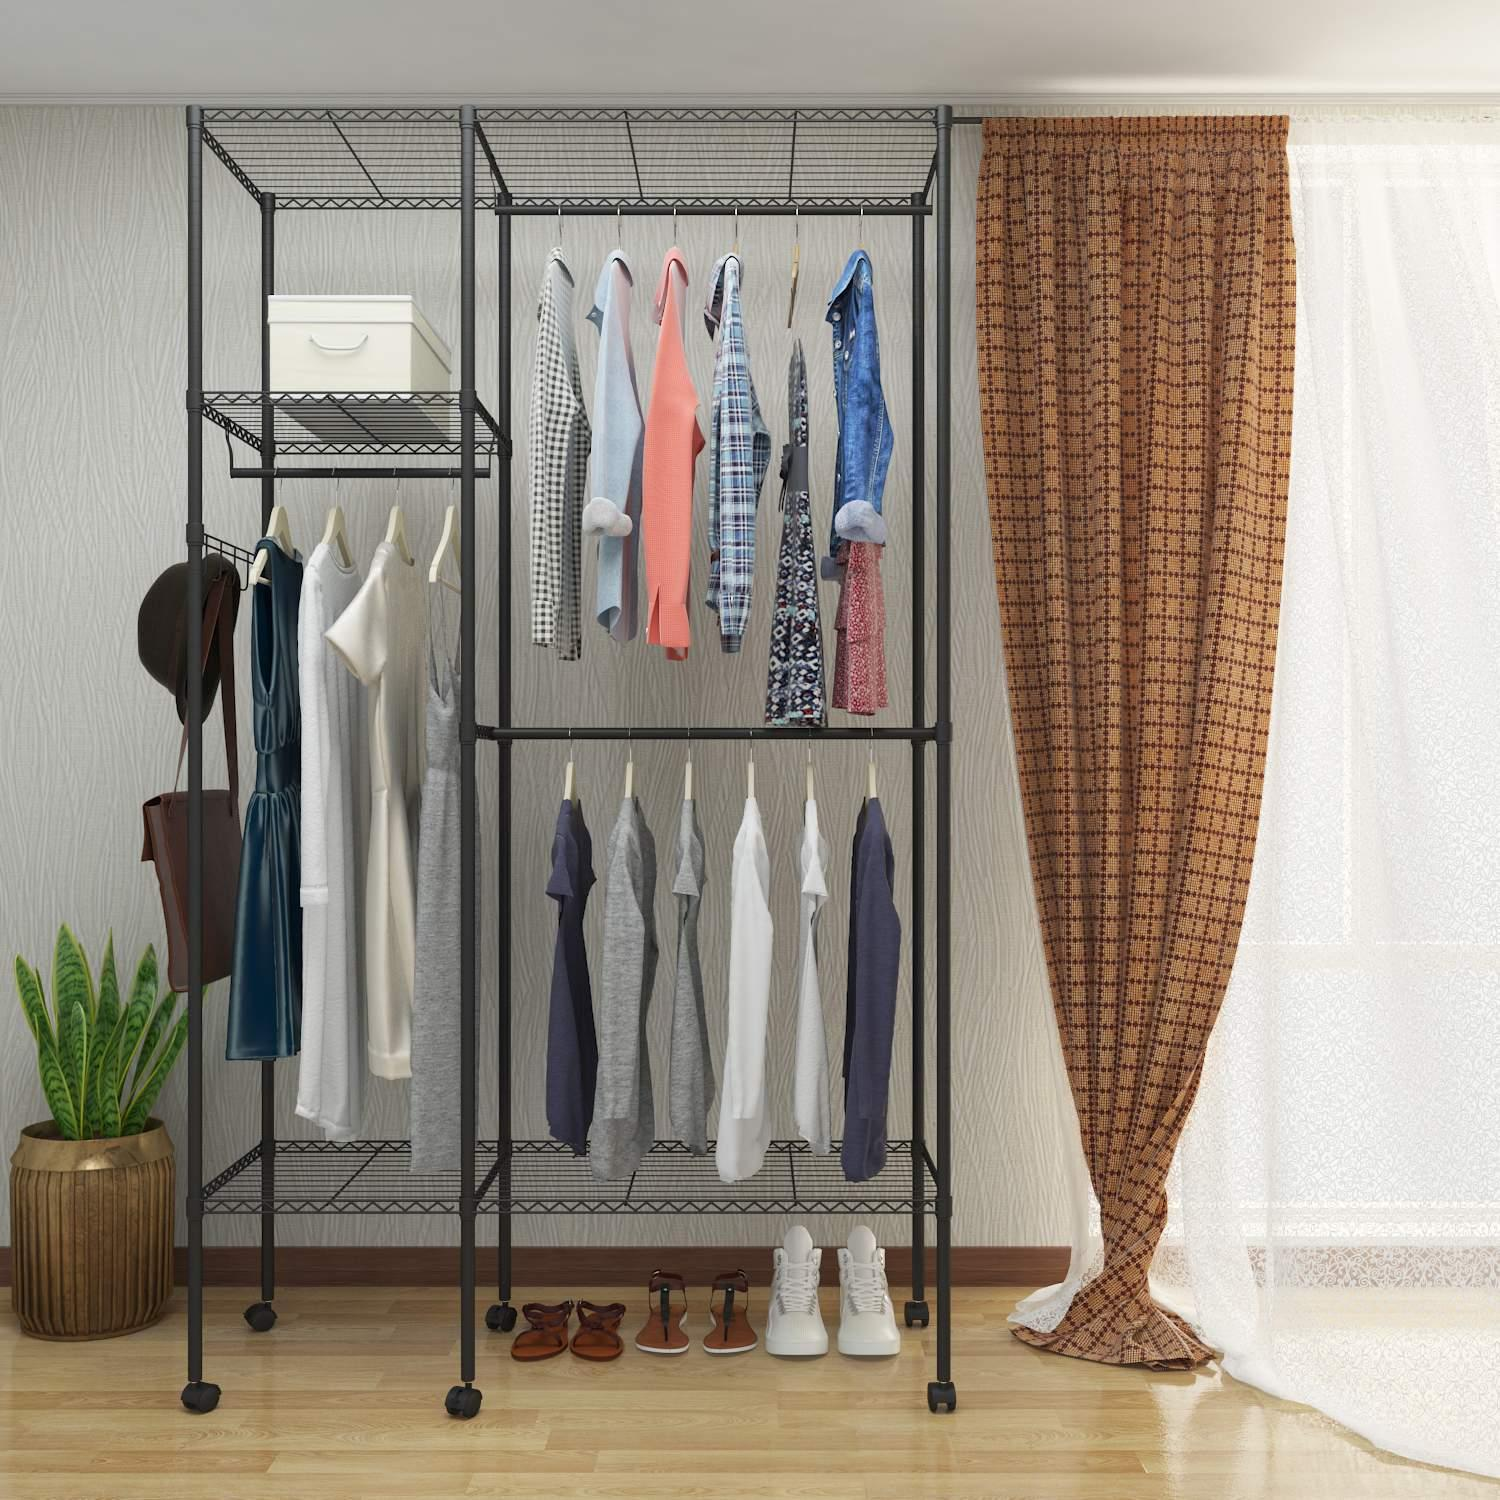 SPHP The worth buy Wire Shelving Garment Rack With Wheels Closet Hanger Storage Organizer Clothes Wardrobe  SPHP